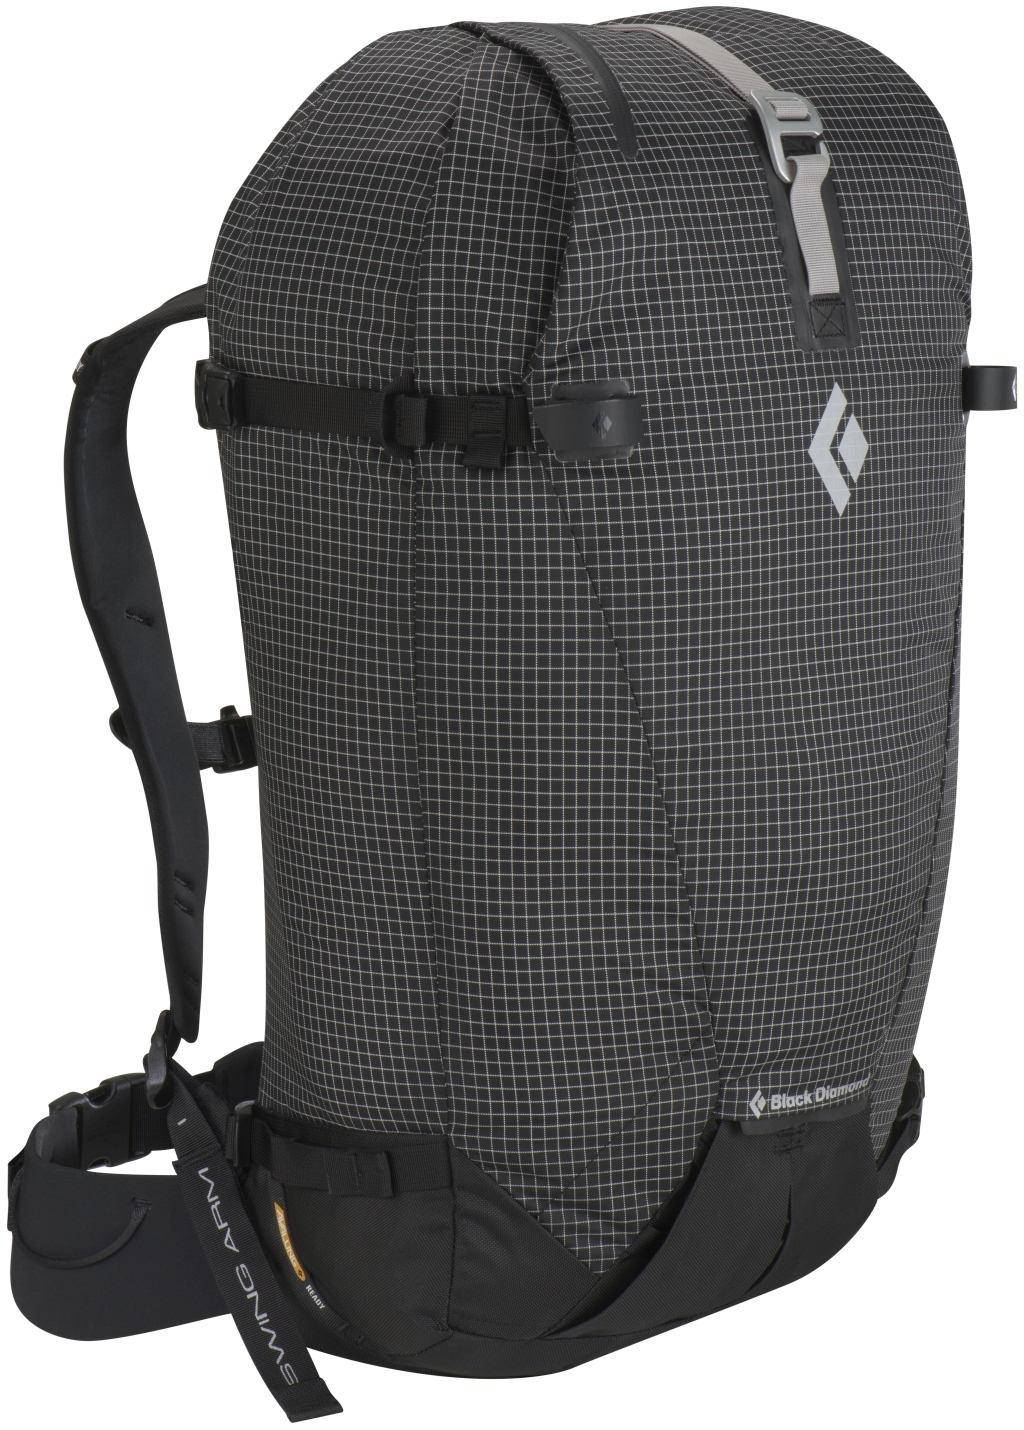 Black Diamond Cirque 45 Pack Black-30